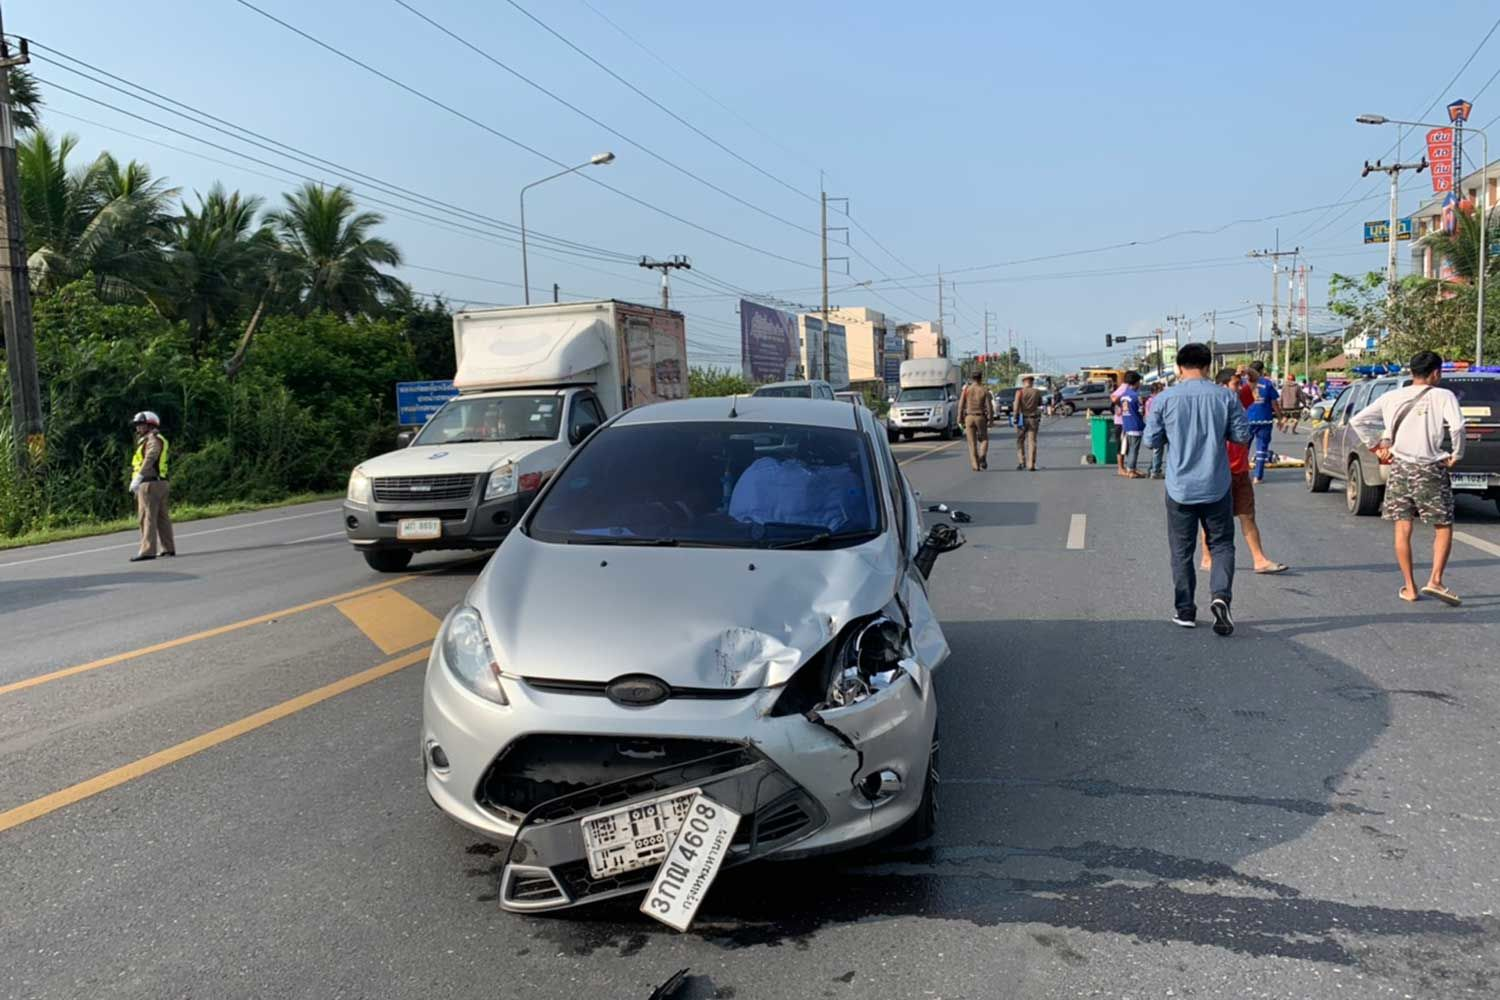 Mother and baby killed in Nakhon Si Thammarat intersection | News by Thaiger